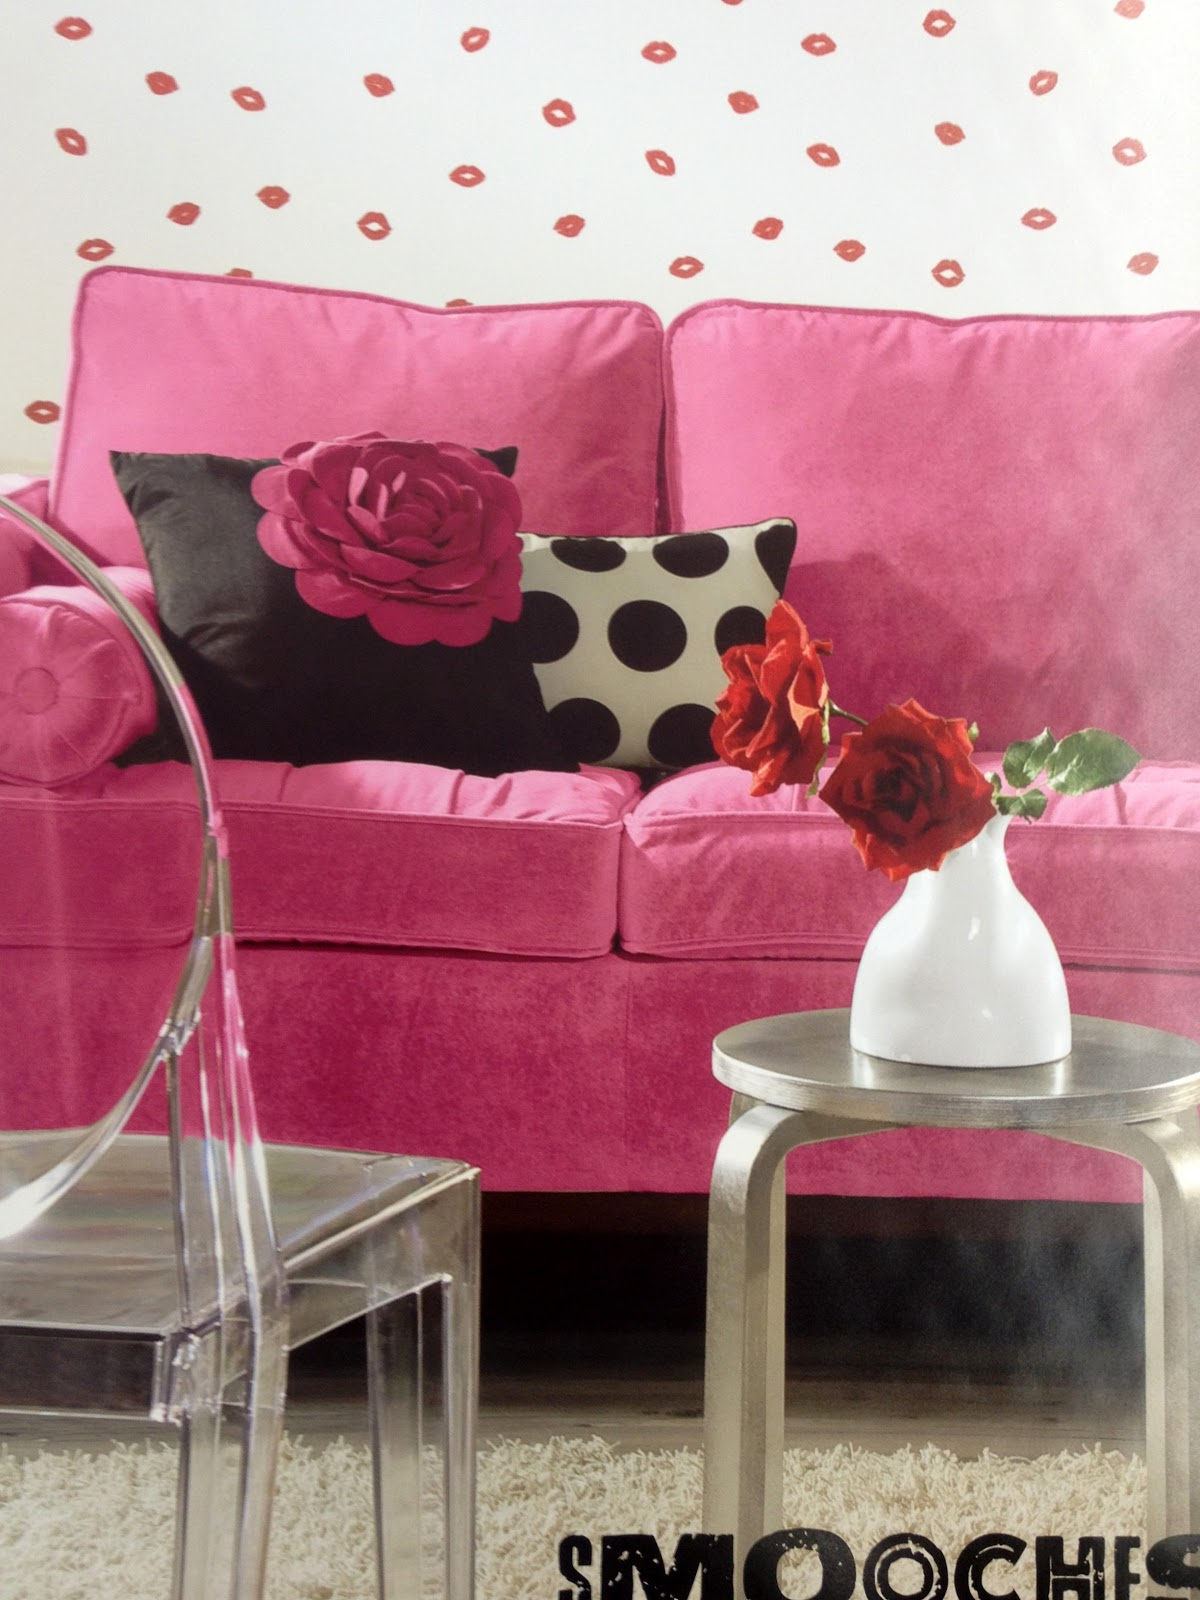 playfuldid you notice the flower on the pillow and the roses mimic 1200x1600